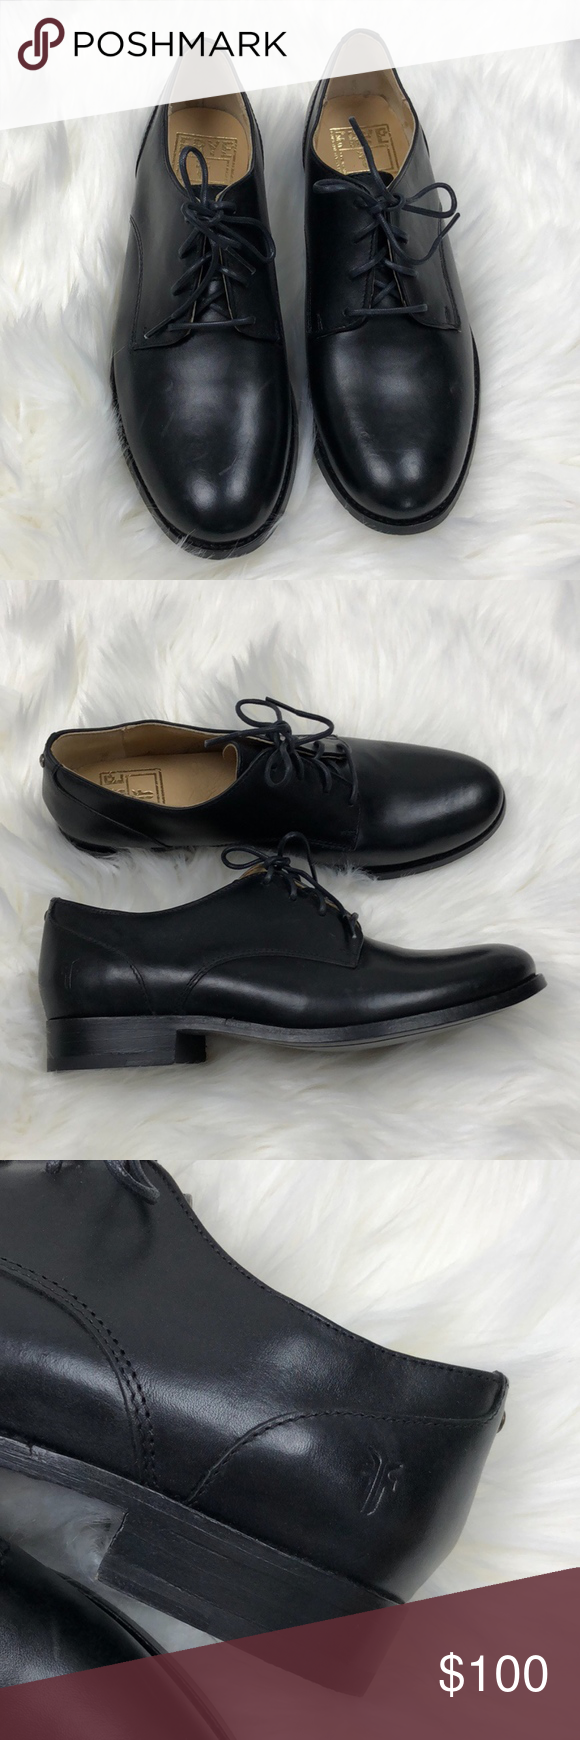 43e81300cd6 FRYE Black Leather Derby Loafers FRYE Black Leather Melissa Derby Lofters  Excellent Condition - Some Scuffing